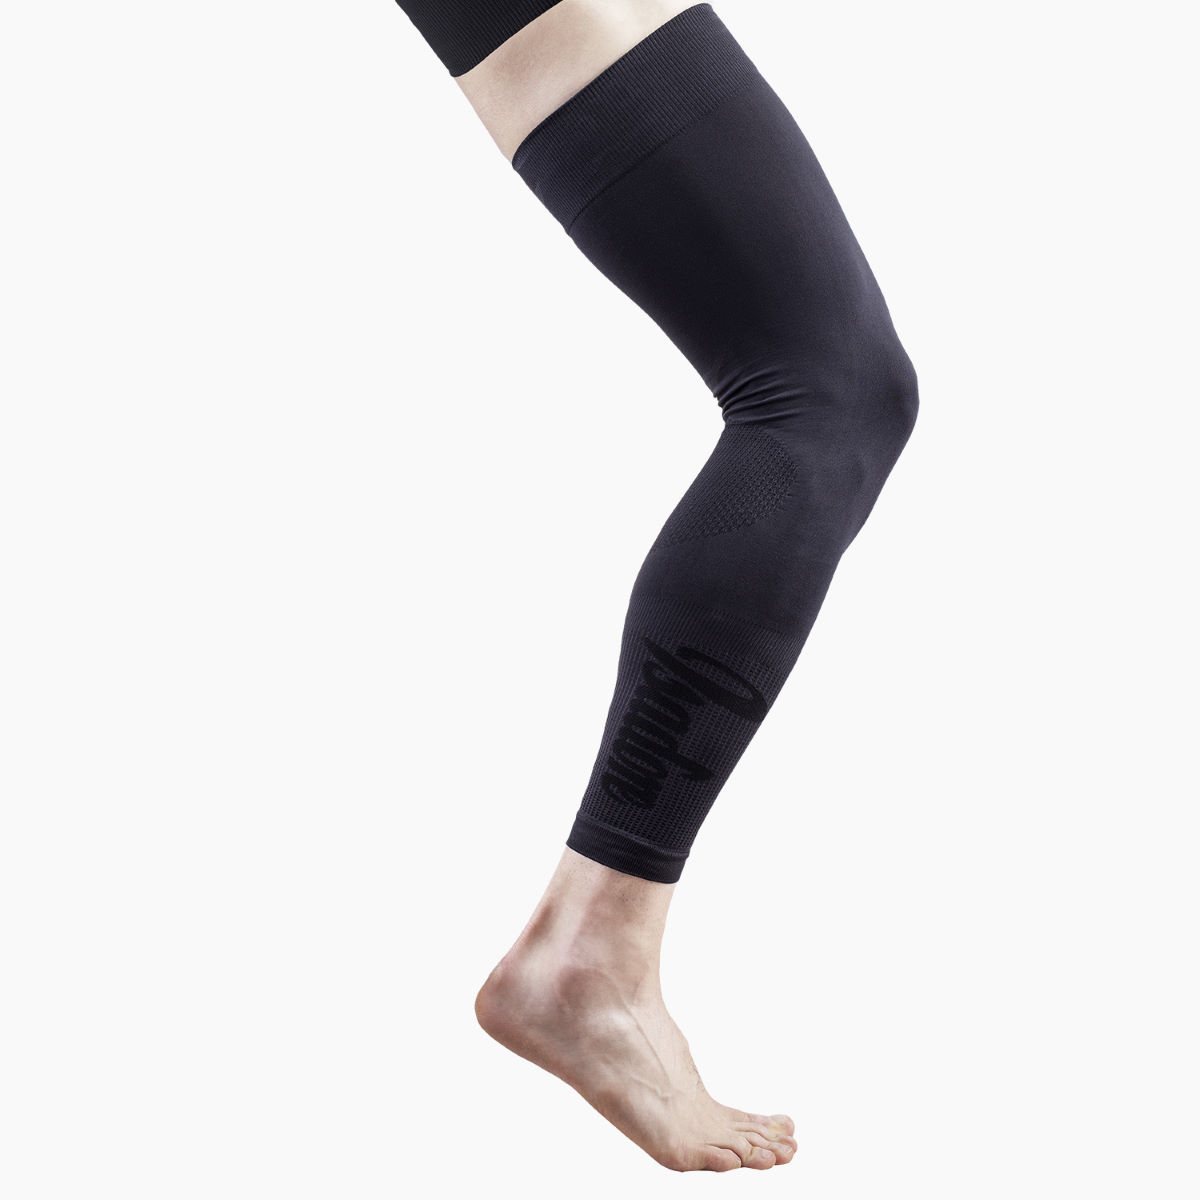 Isadore Isadore Eco-Knit Leg Warmers   Leg Warmers